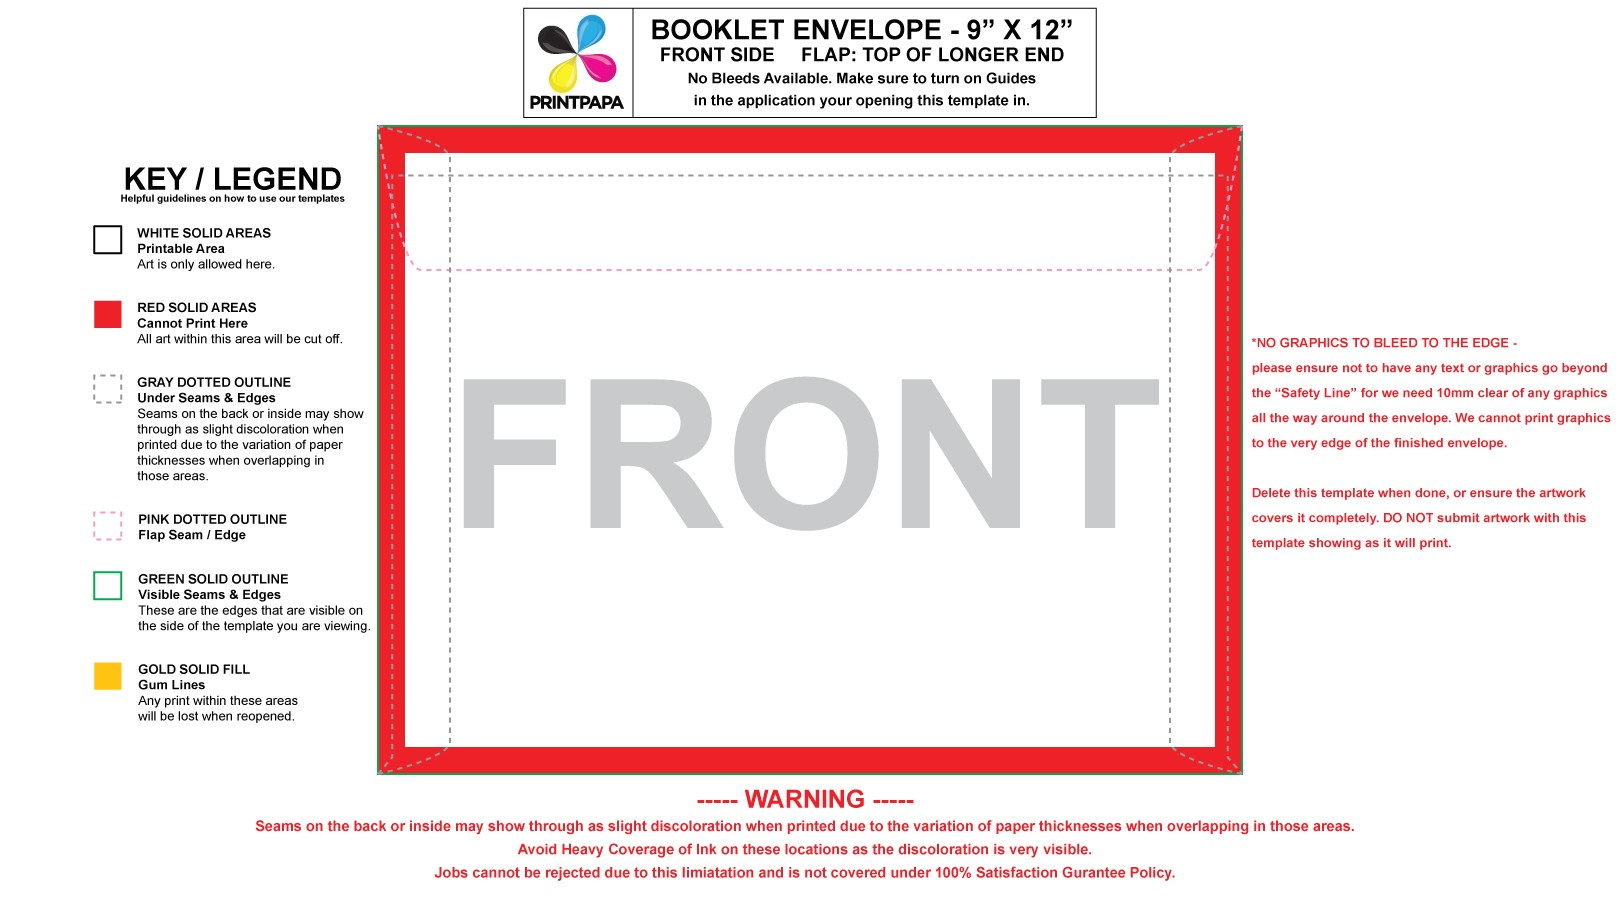 envelope template 7 25 x 5 25 9 x 12 booklet envelope templates 44502